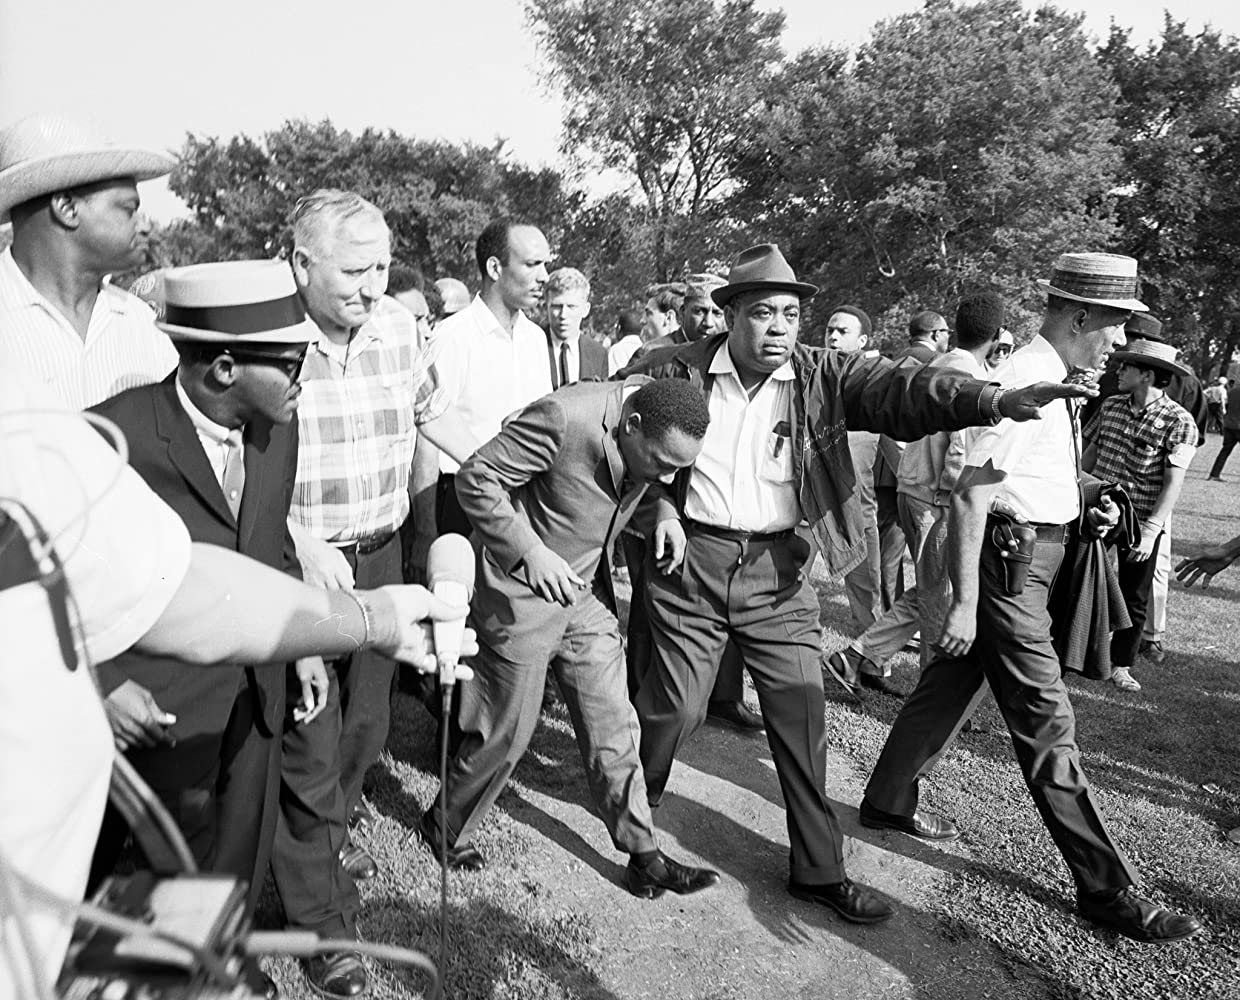 La lucha pacífica de Martin Luther King